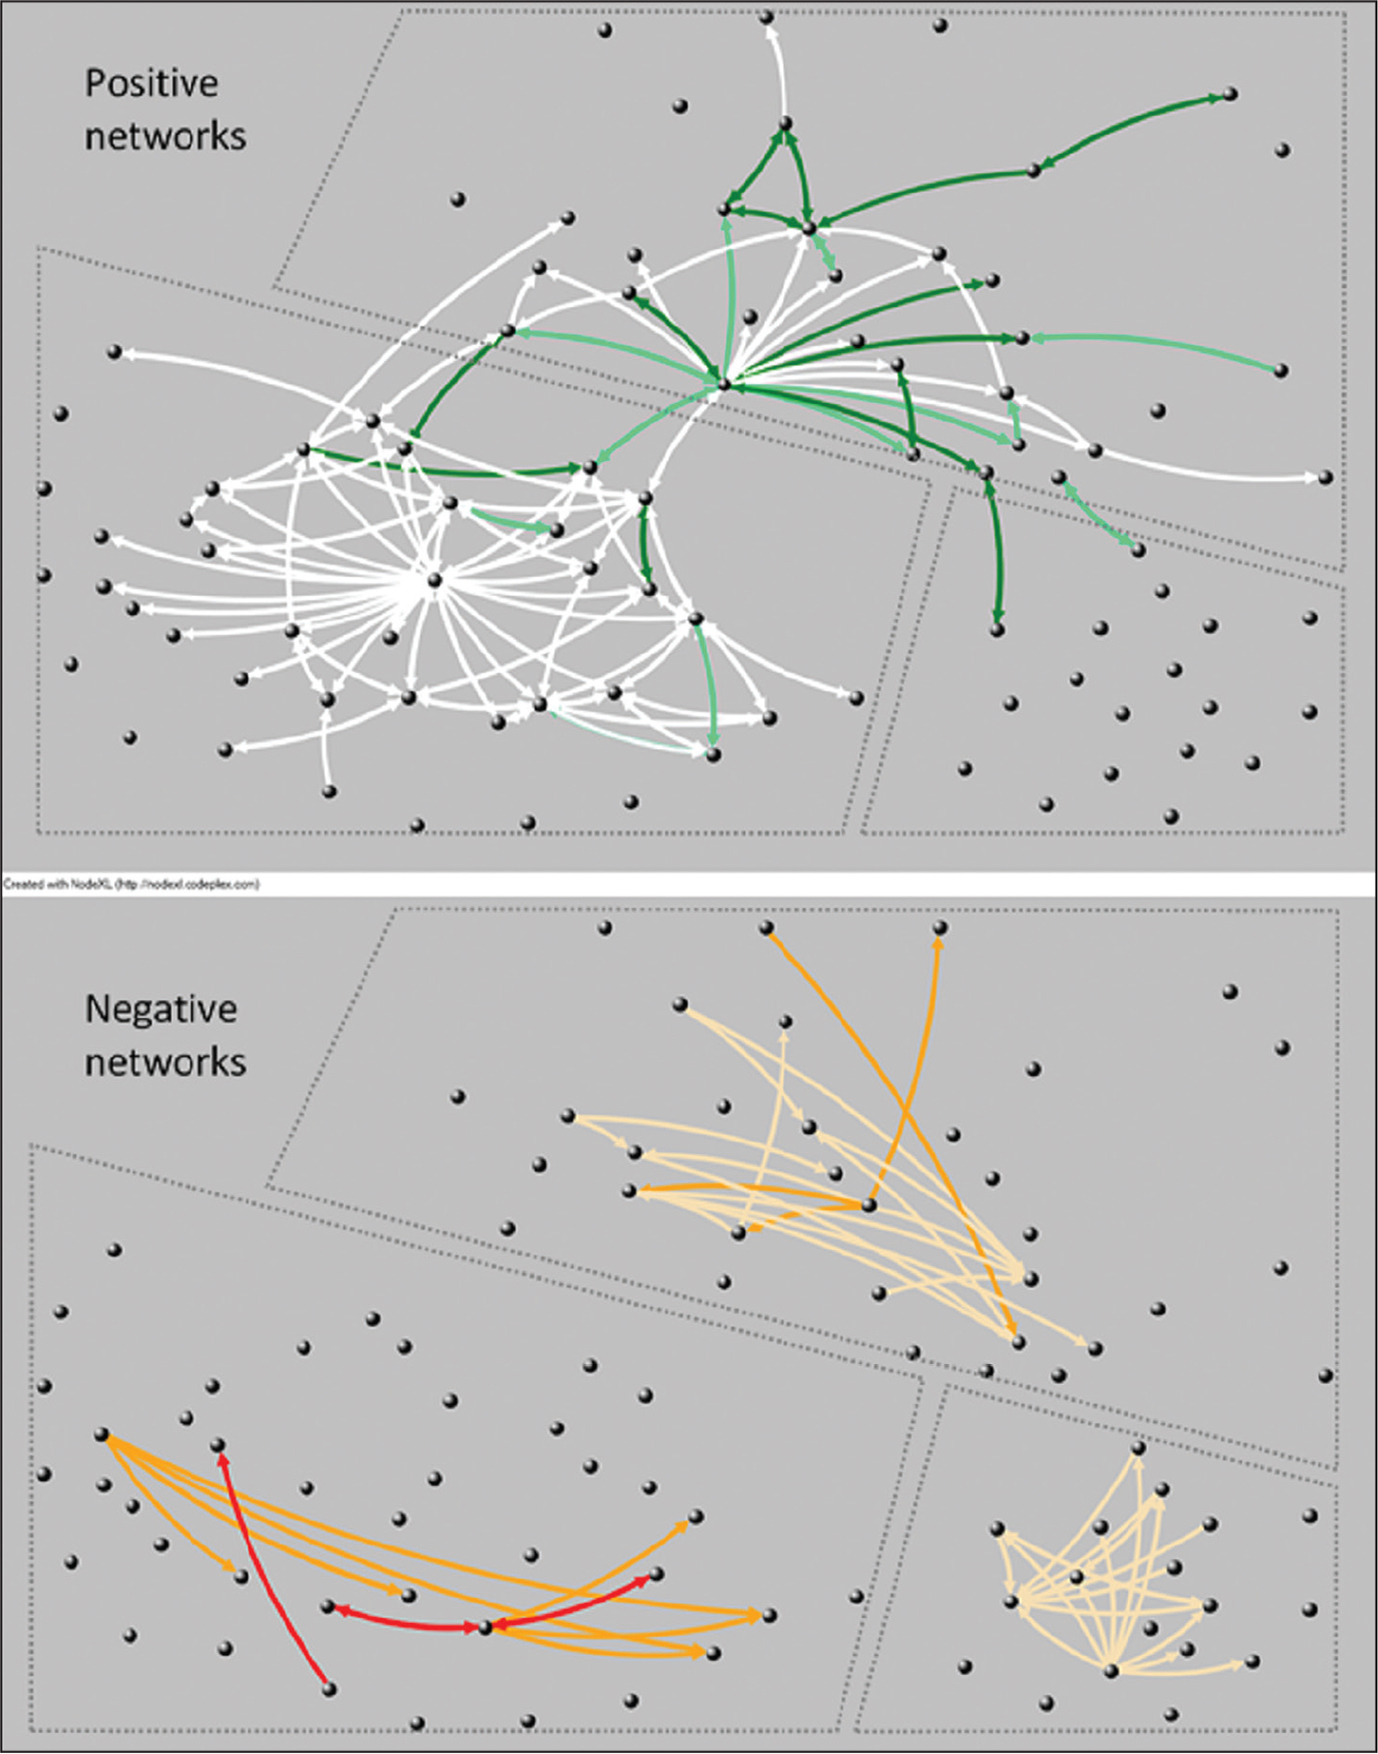 Staff-rated resident positive (top) and negative (bottom) social networks. Spheres represent all residents in each care unit (clockwise from lower left corner of each graph): Unit 1, n = 40; Unit 3, n = 33; Dementia-Specific Unit, n = 18. Arrows indicate tie direction. Line colors indicate relationship rating: dark green = true friend, light green = casual friend, white = positive regard; and yellow = mild disregard, orange = moderate dislike, red = strong dislike.